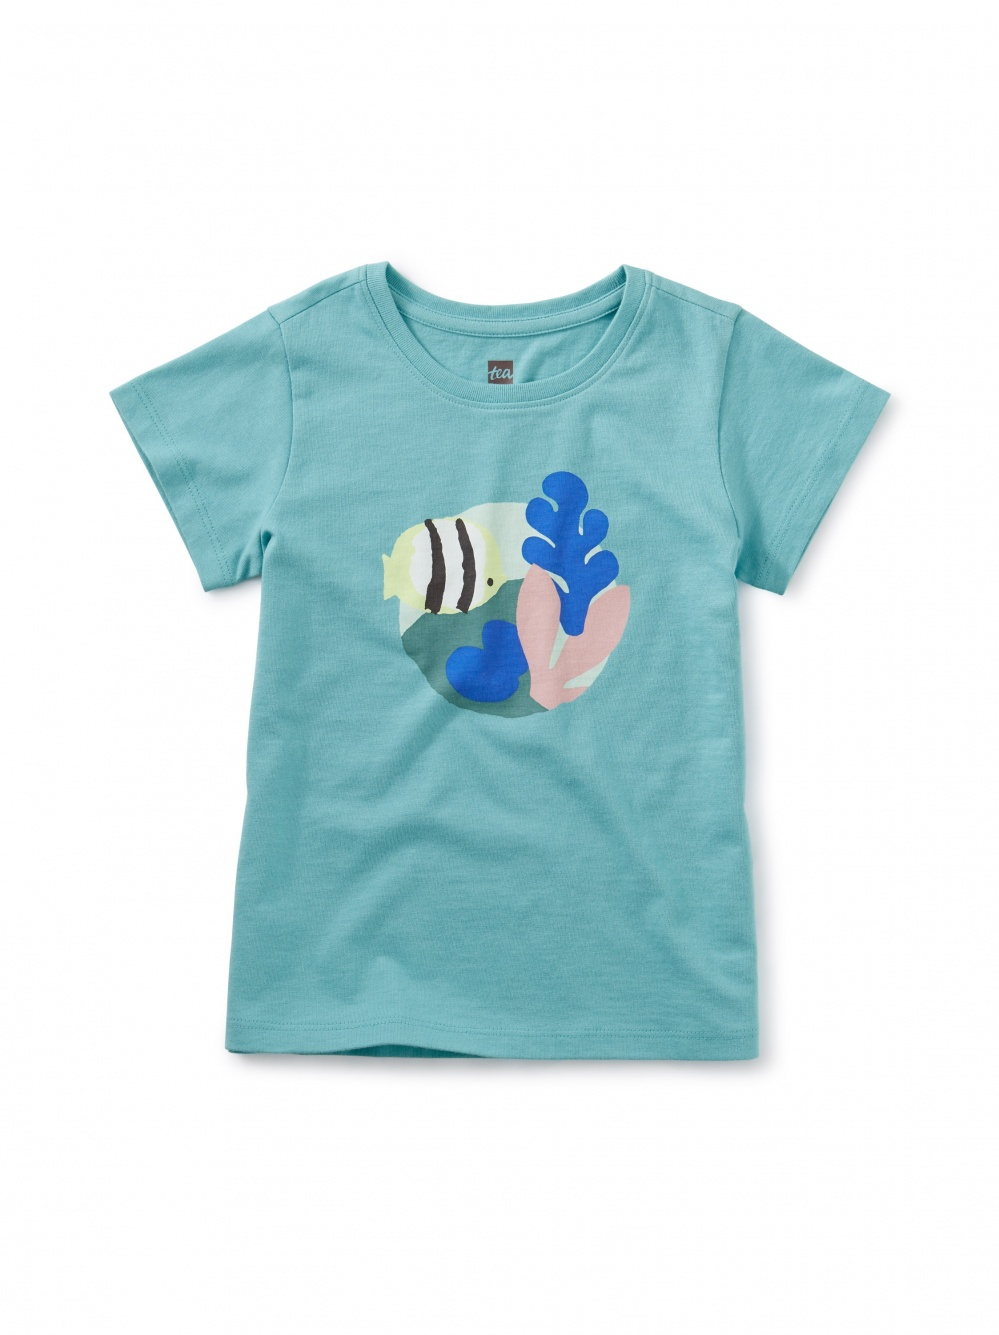 Under The Sea Graphic Tee